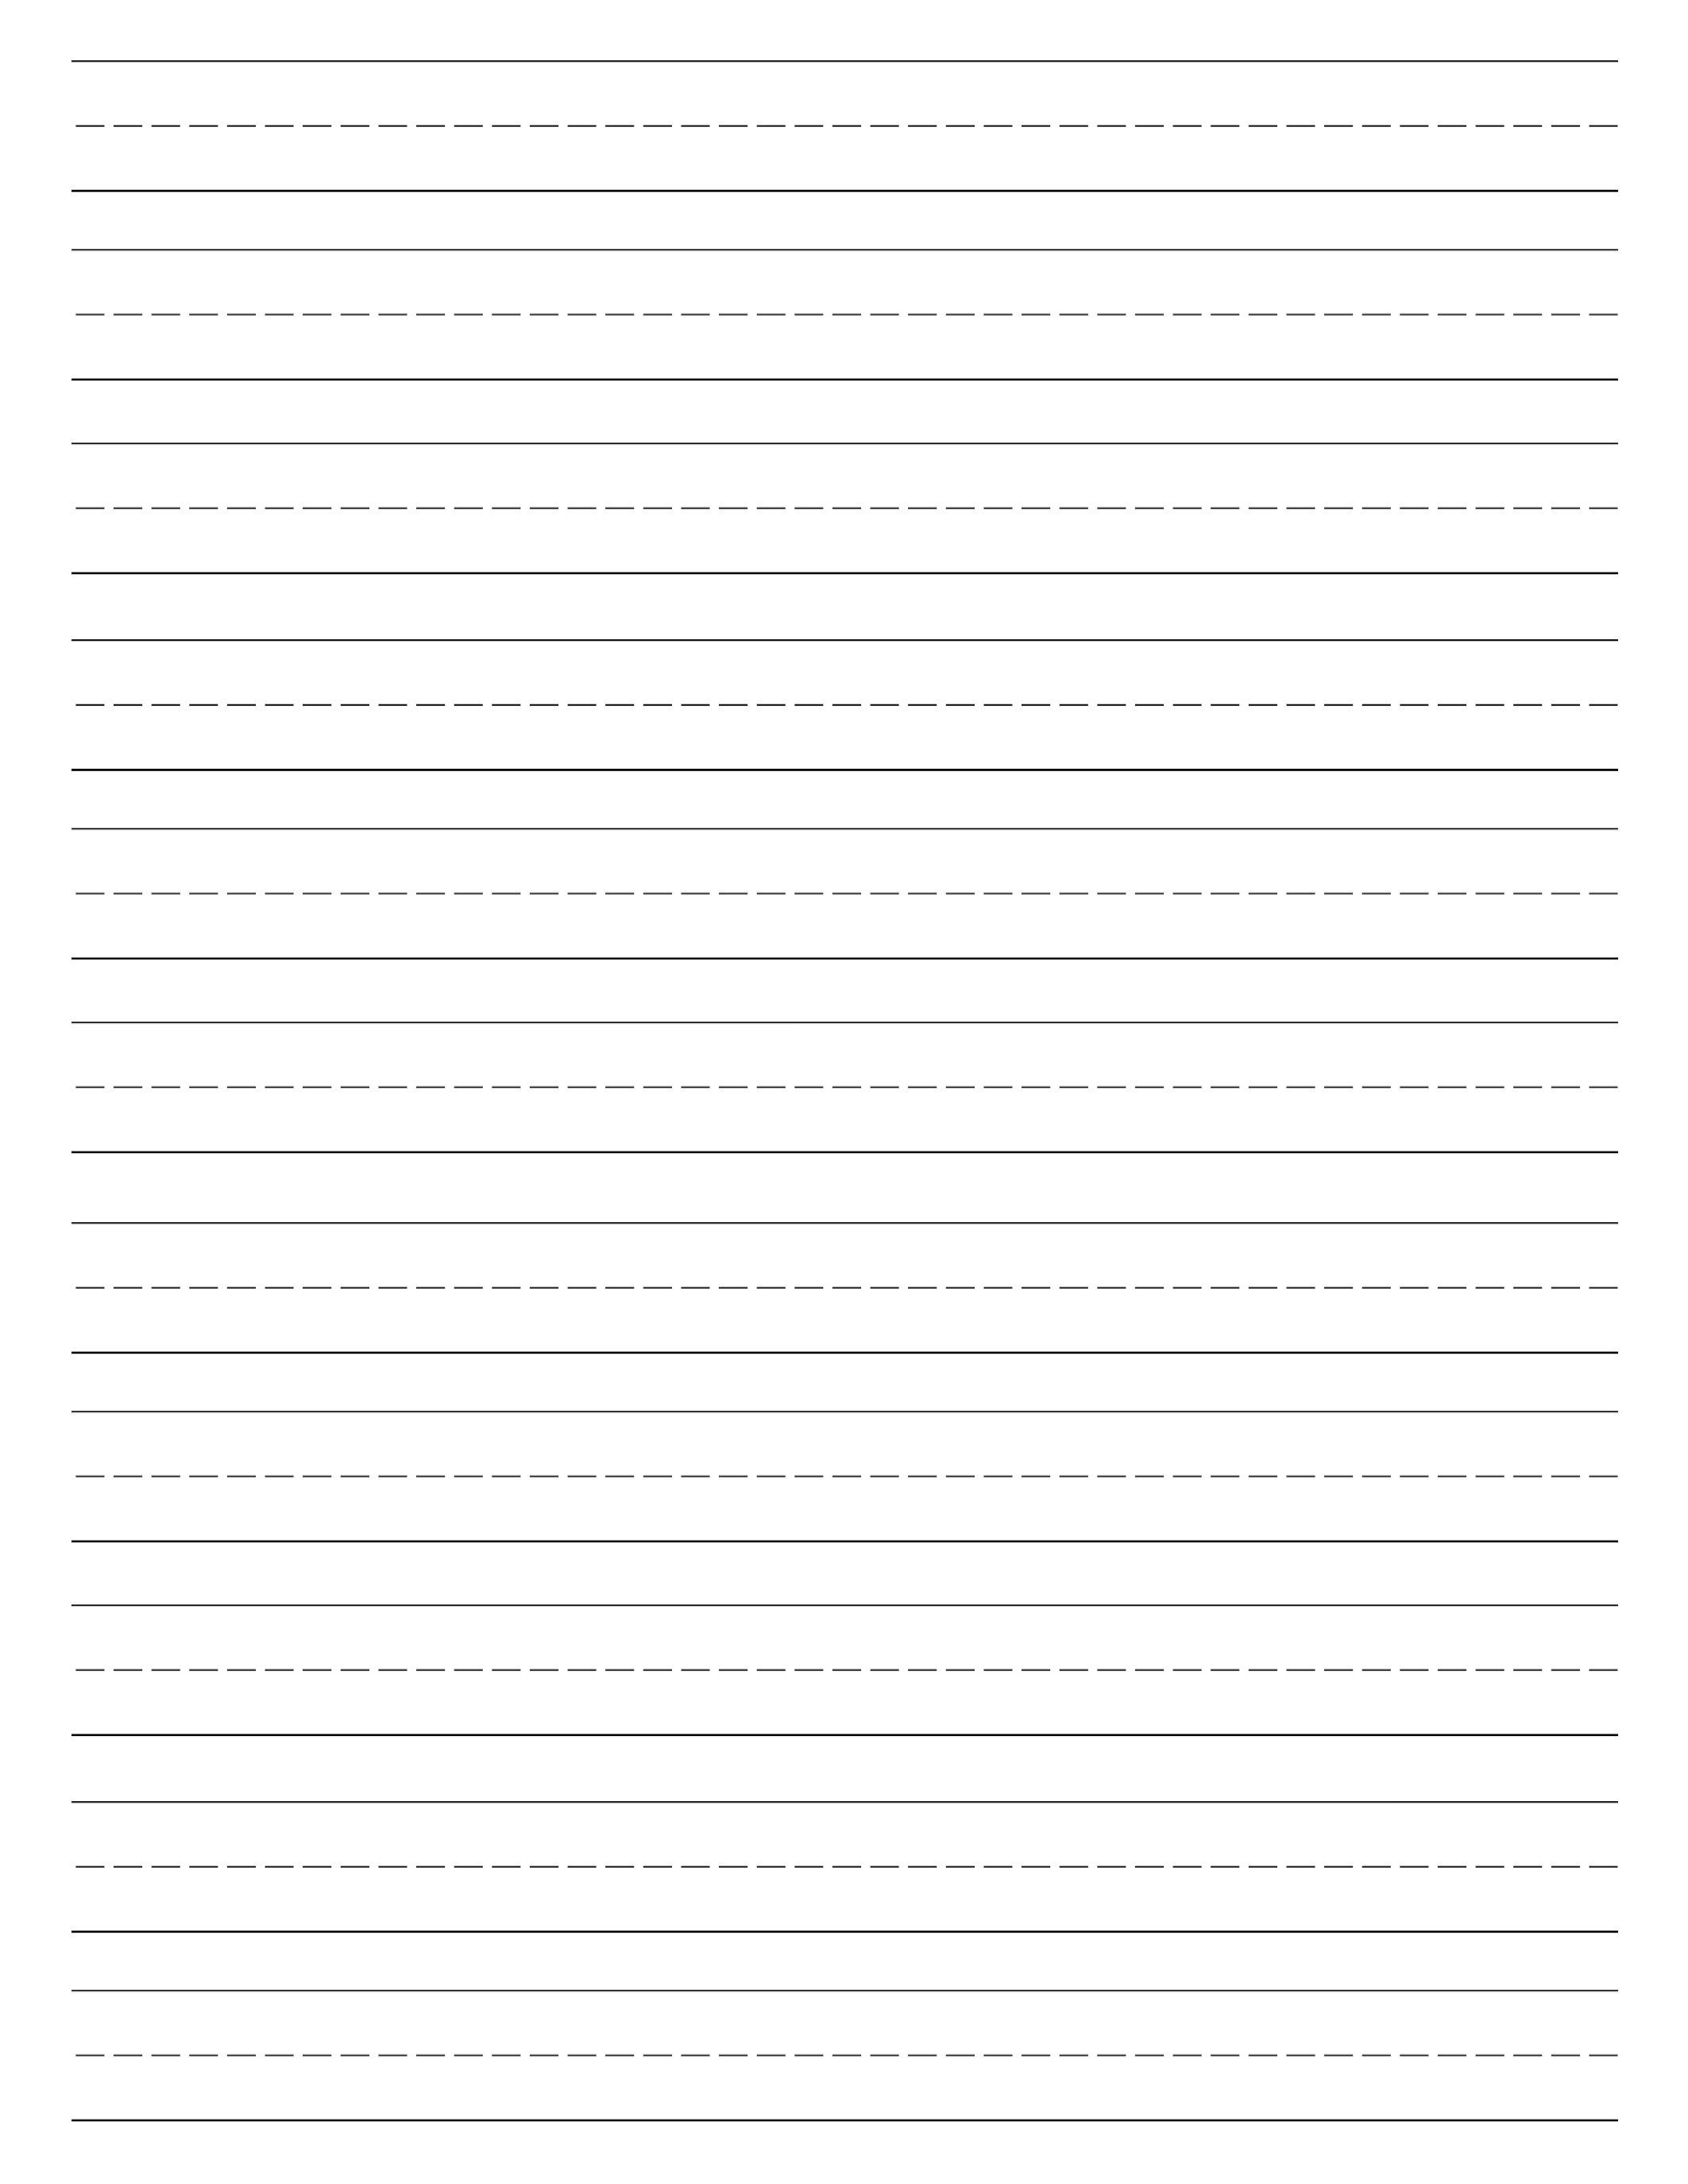 Free Printable Lined Paper {Handwriting Paper Template} | Preschool - Free Printable Kindergarten Lined Paper Template